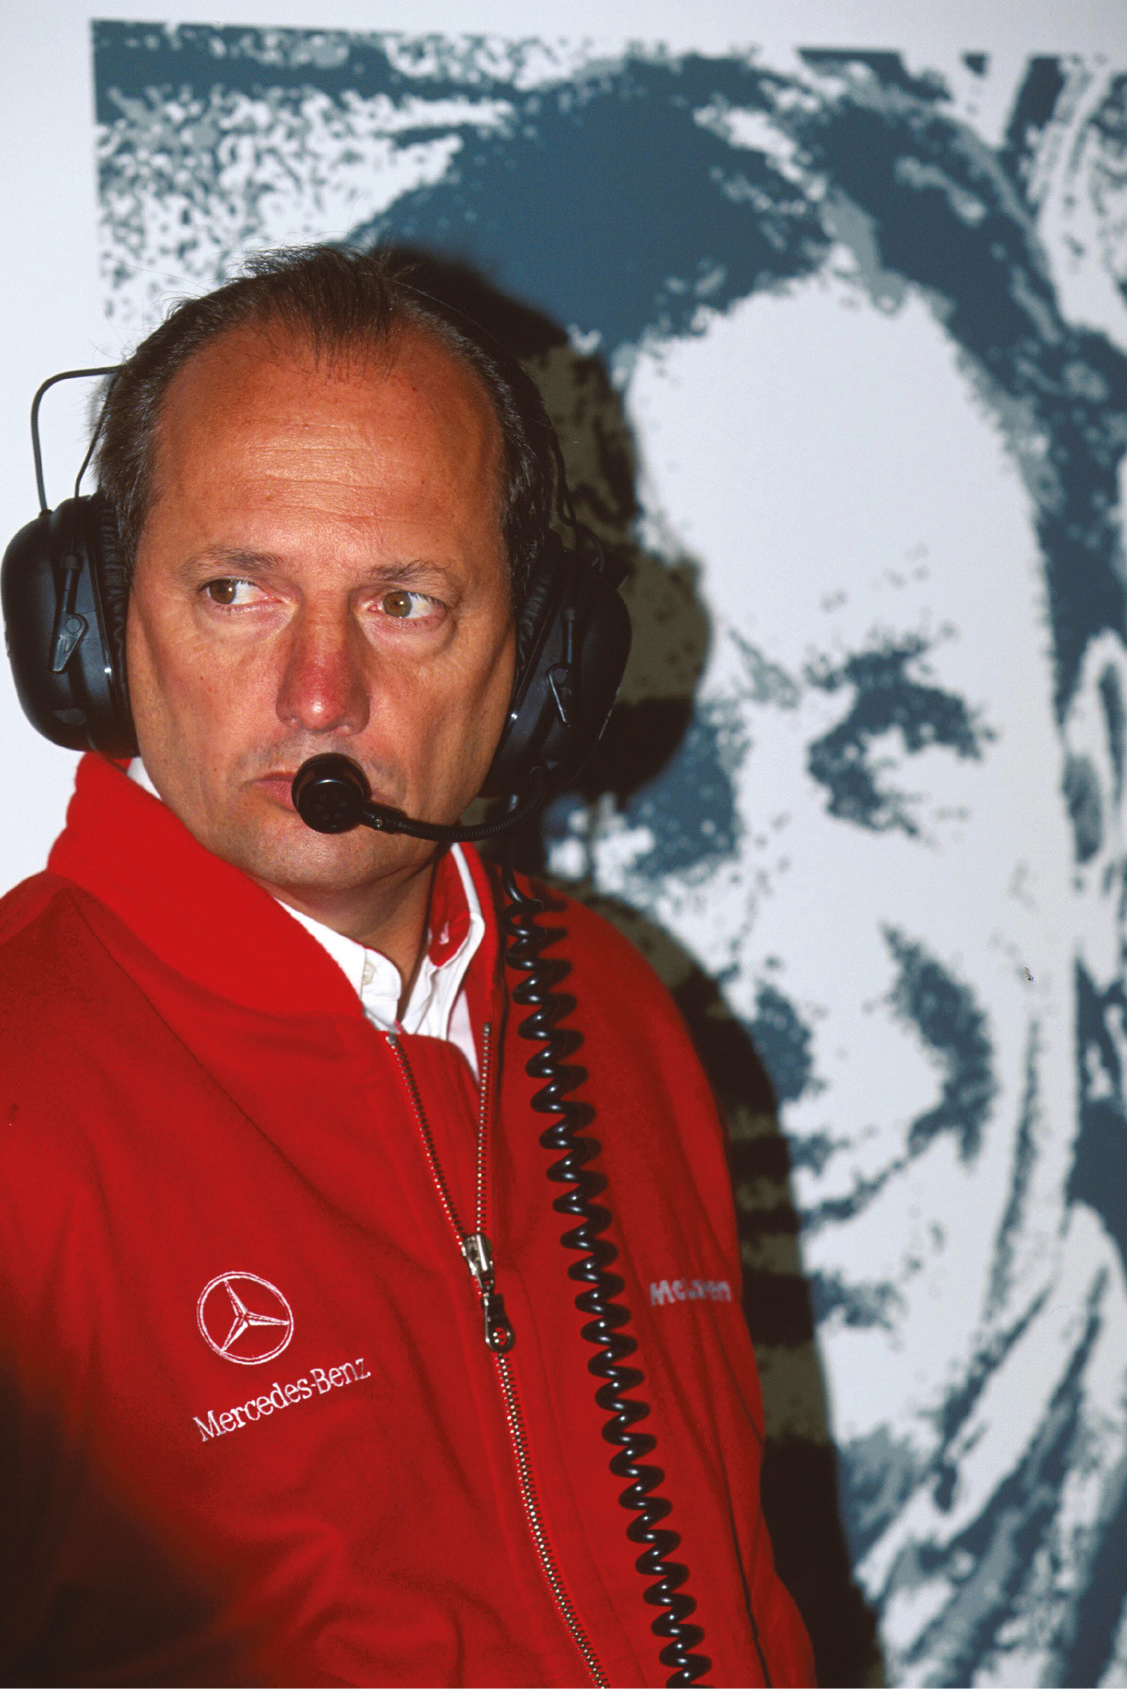 In the shadow of Bruce: Ron Dennis was a man under pressure during the 1995 season, as the team slumped down the pecking order.